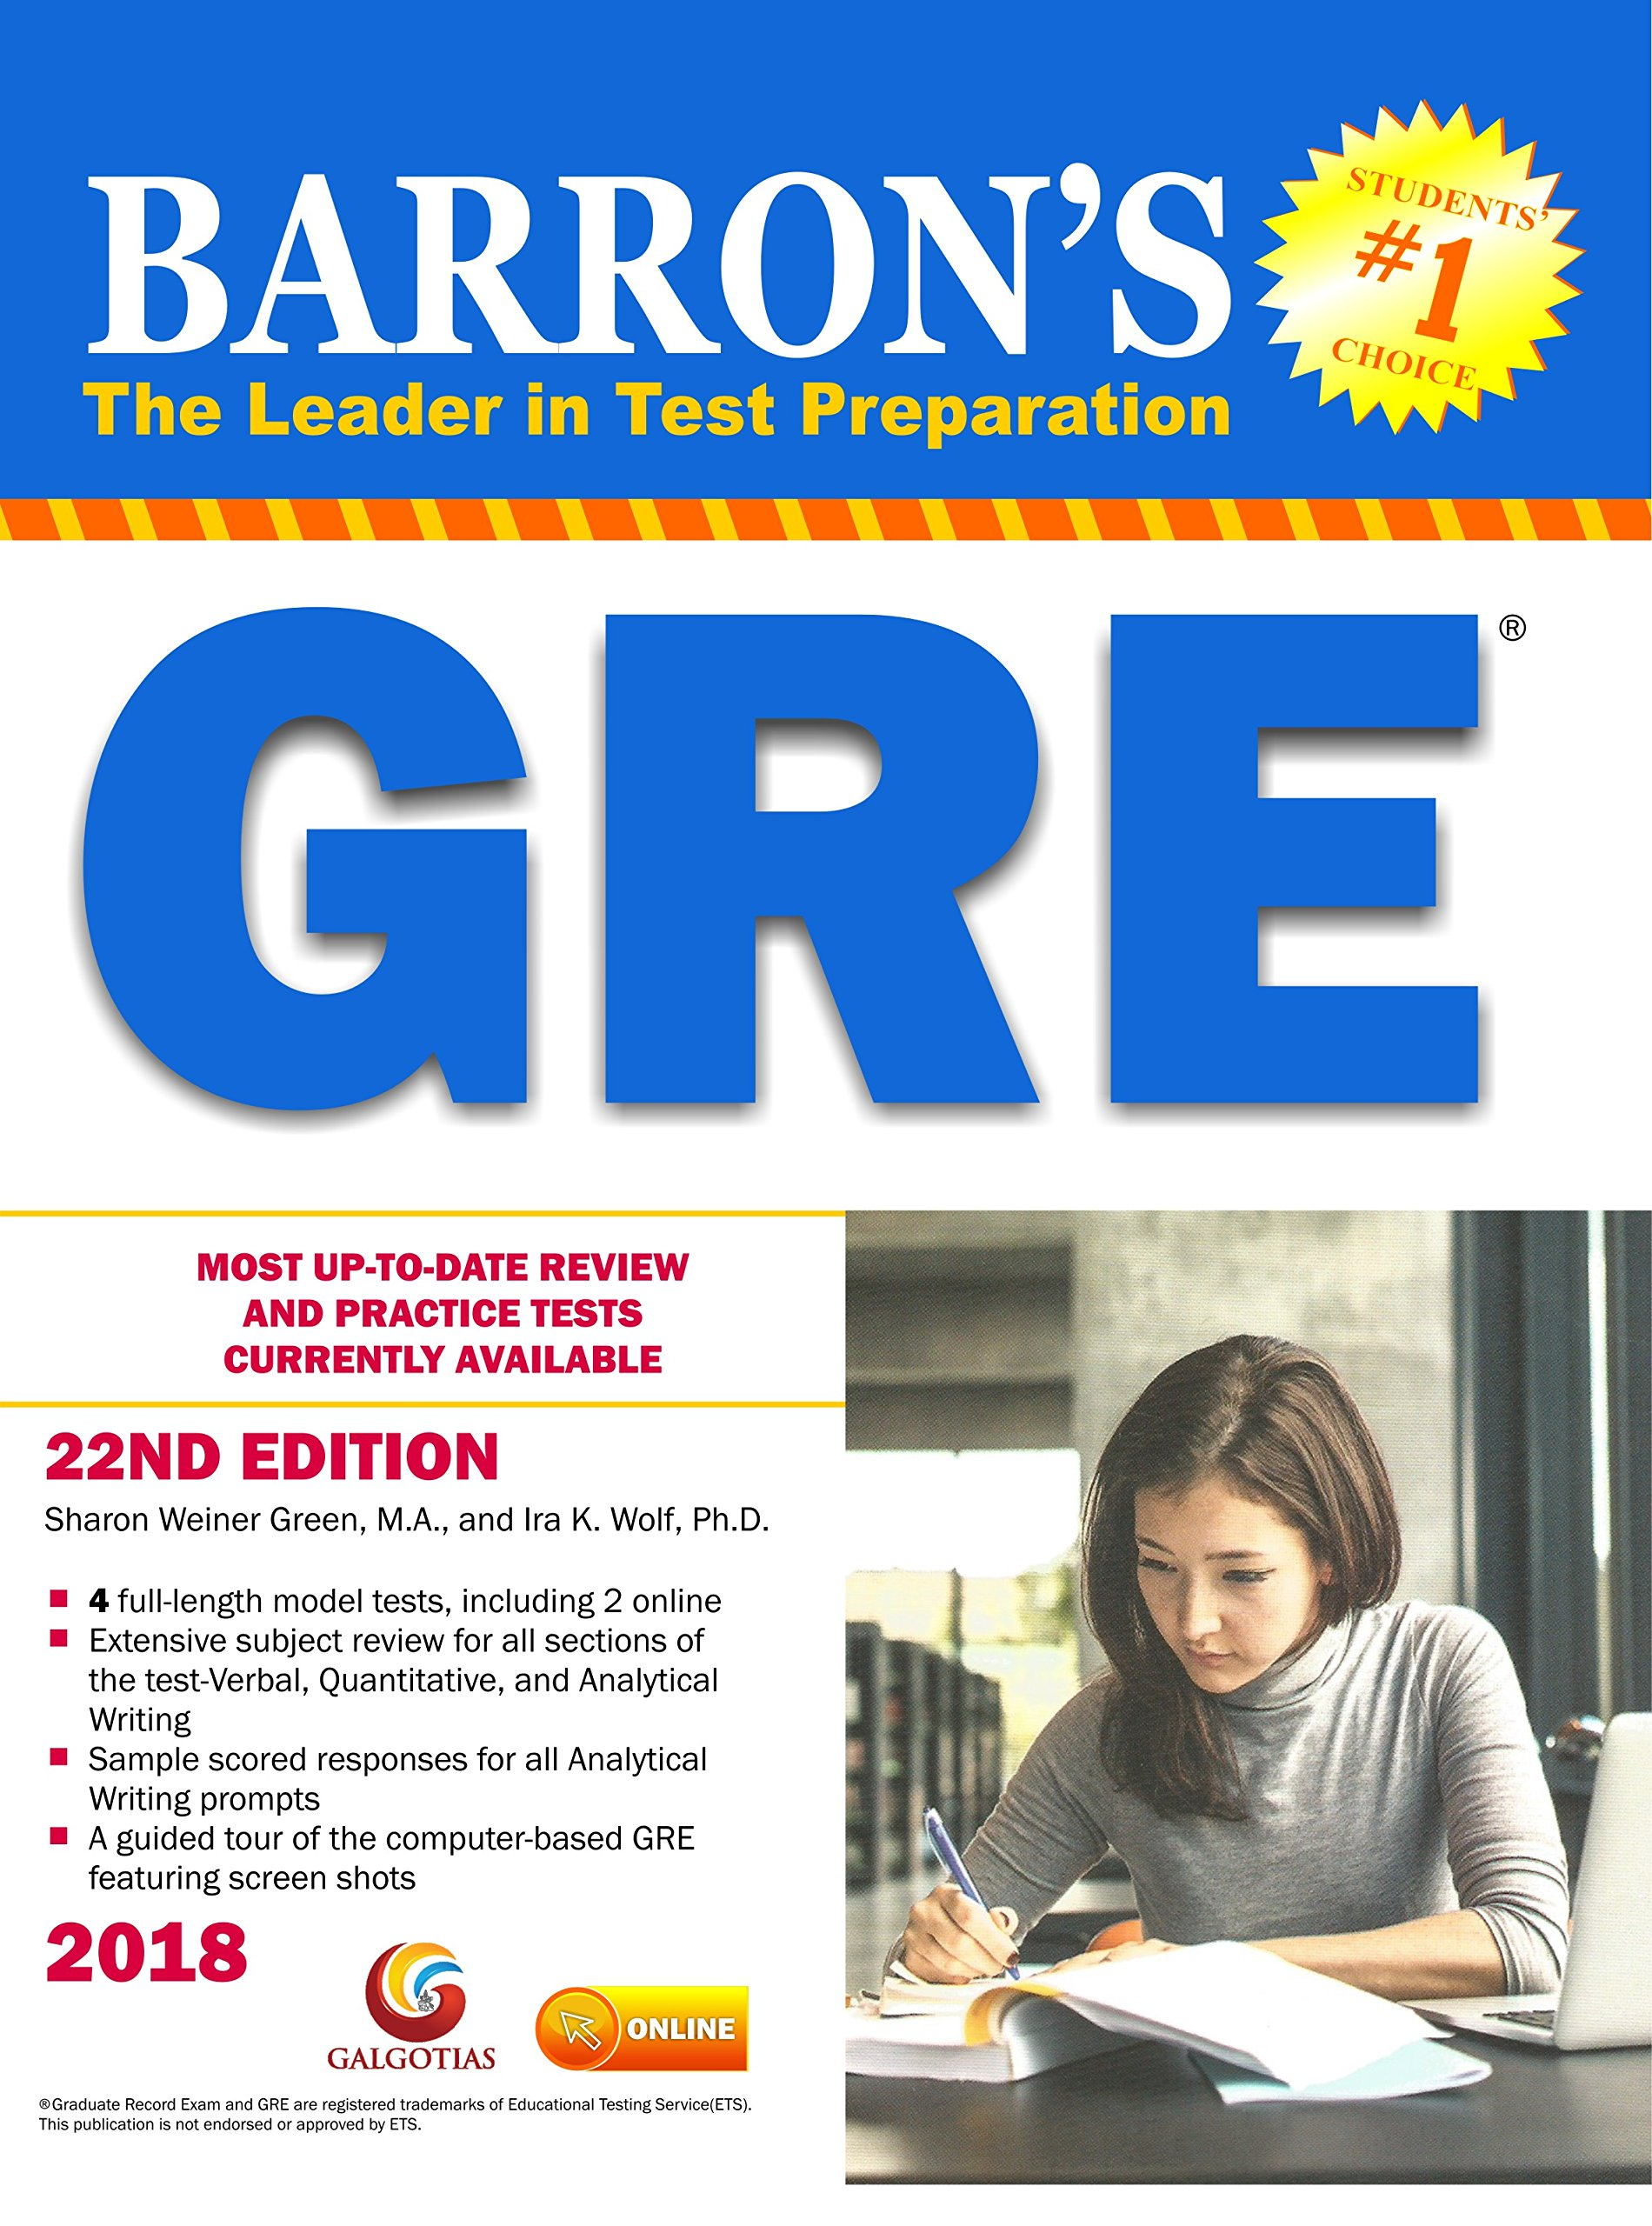 Barron s GRE 21st Edition Book Review - Magoosh GRE Blog